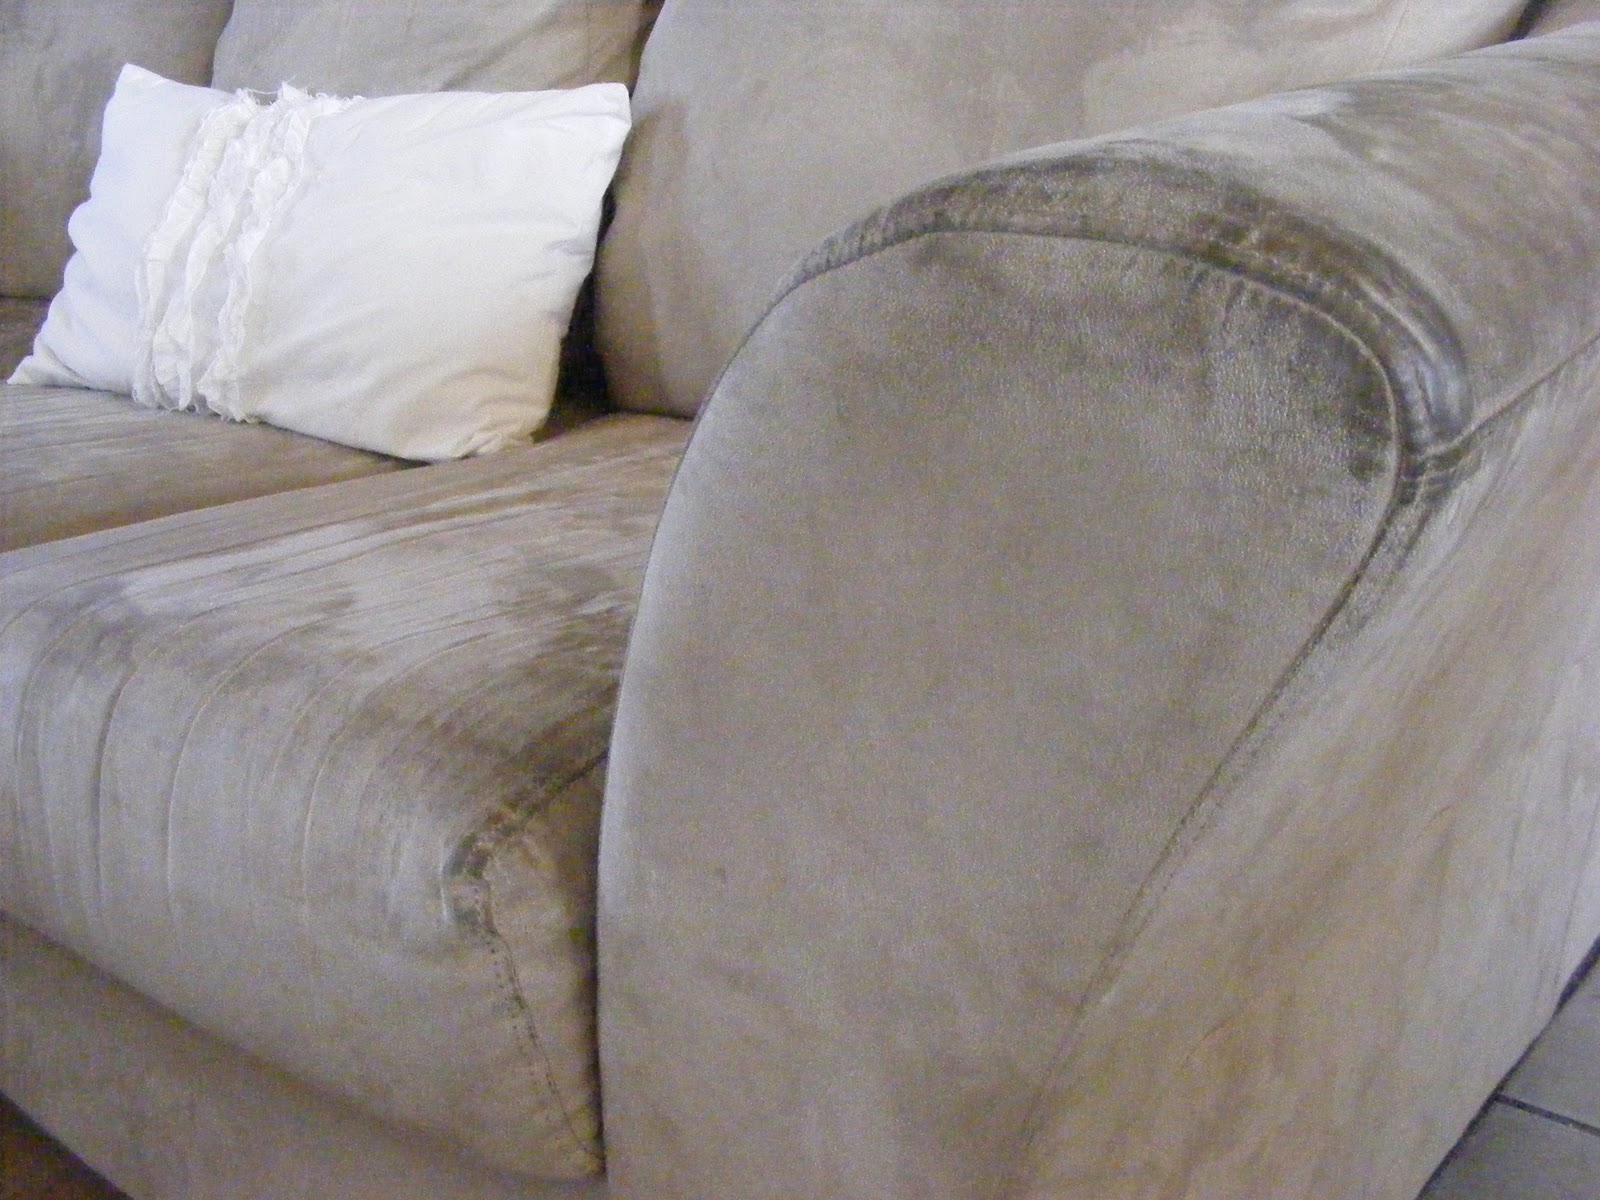 Couch Gross How To Clean A Microfiber Sofa The Complete Guide To Imperfect